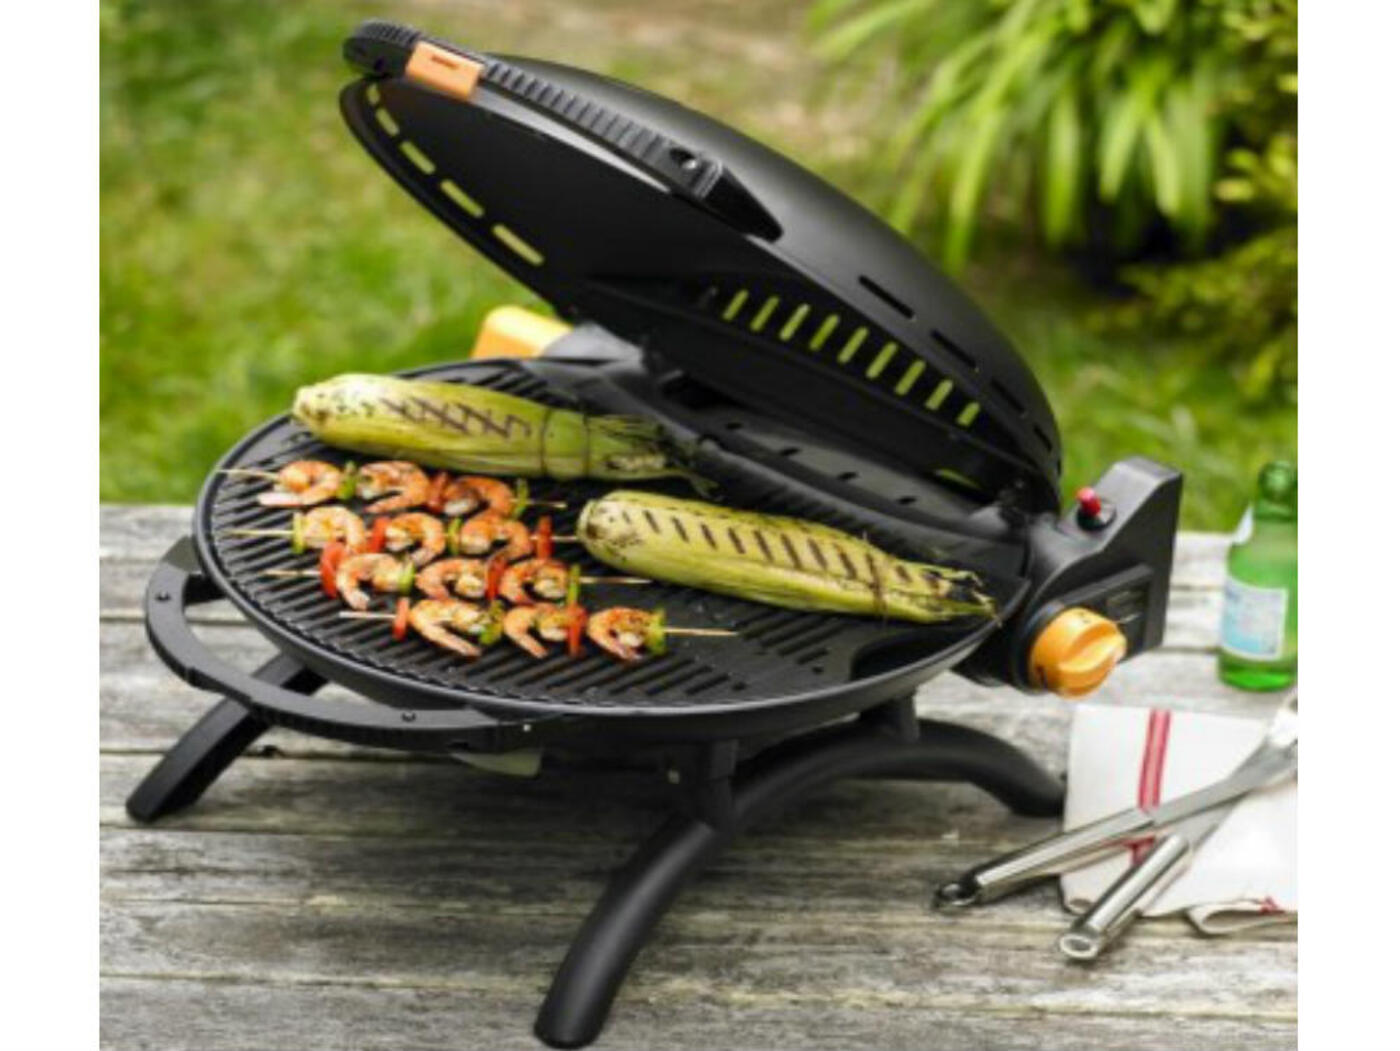 Accessory Shop Camping & Outdoor Barbecue & Grill Iroda O-Grill 500 ...